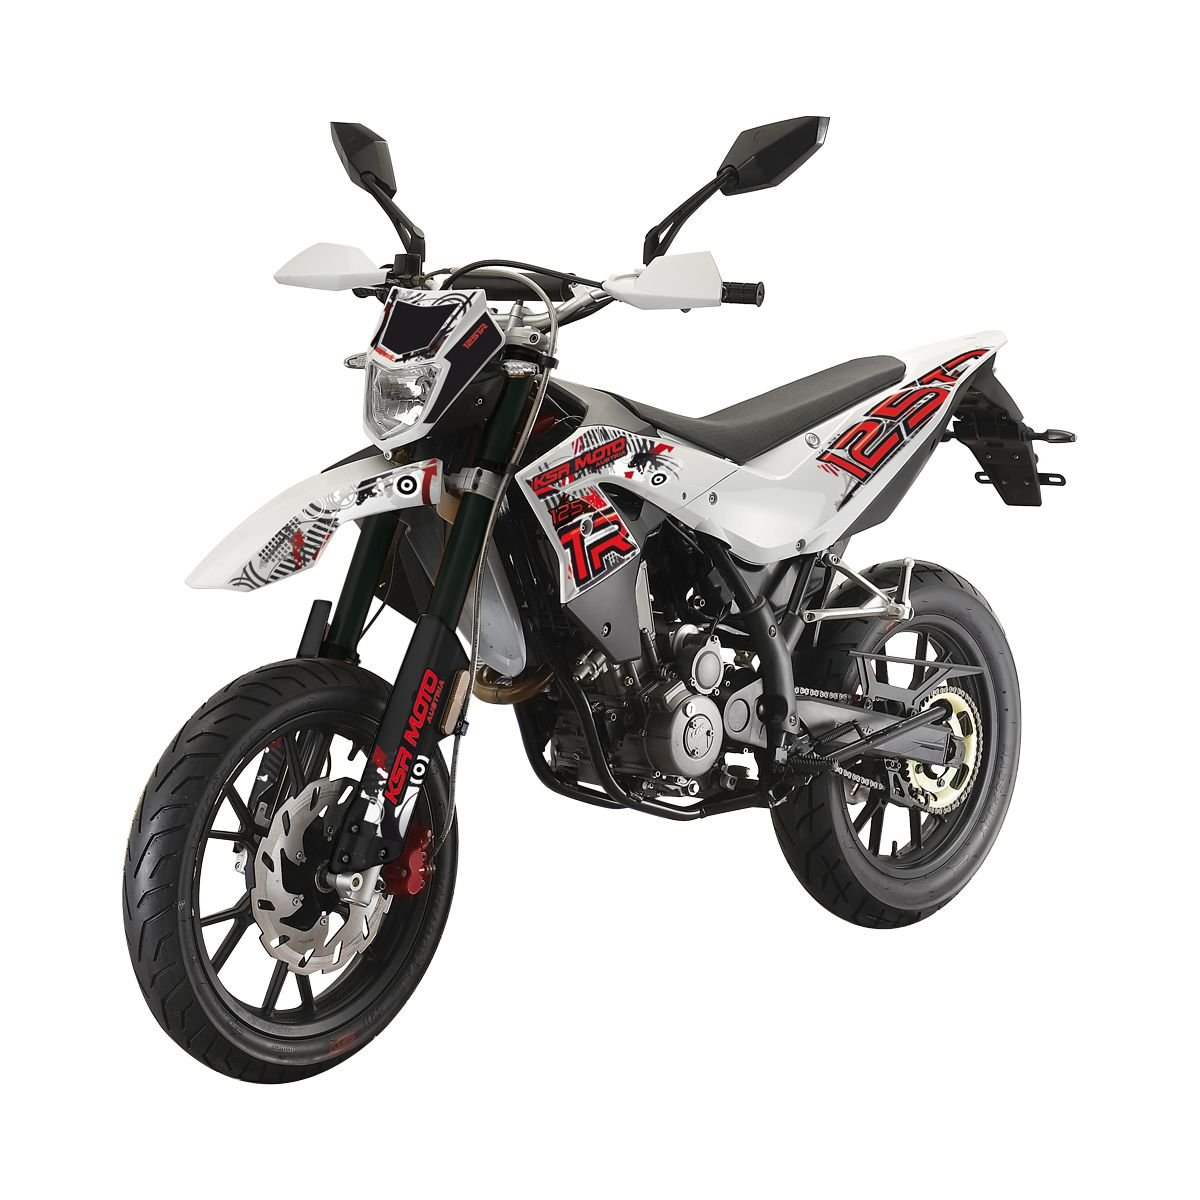 83 yamaha 50ccm supermoto rieju mrt50 pro competition. Black Bedroom Furniture Sets. Home Design Ideas